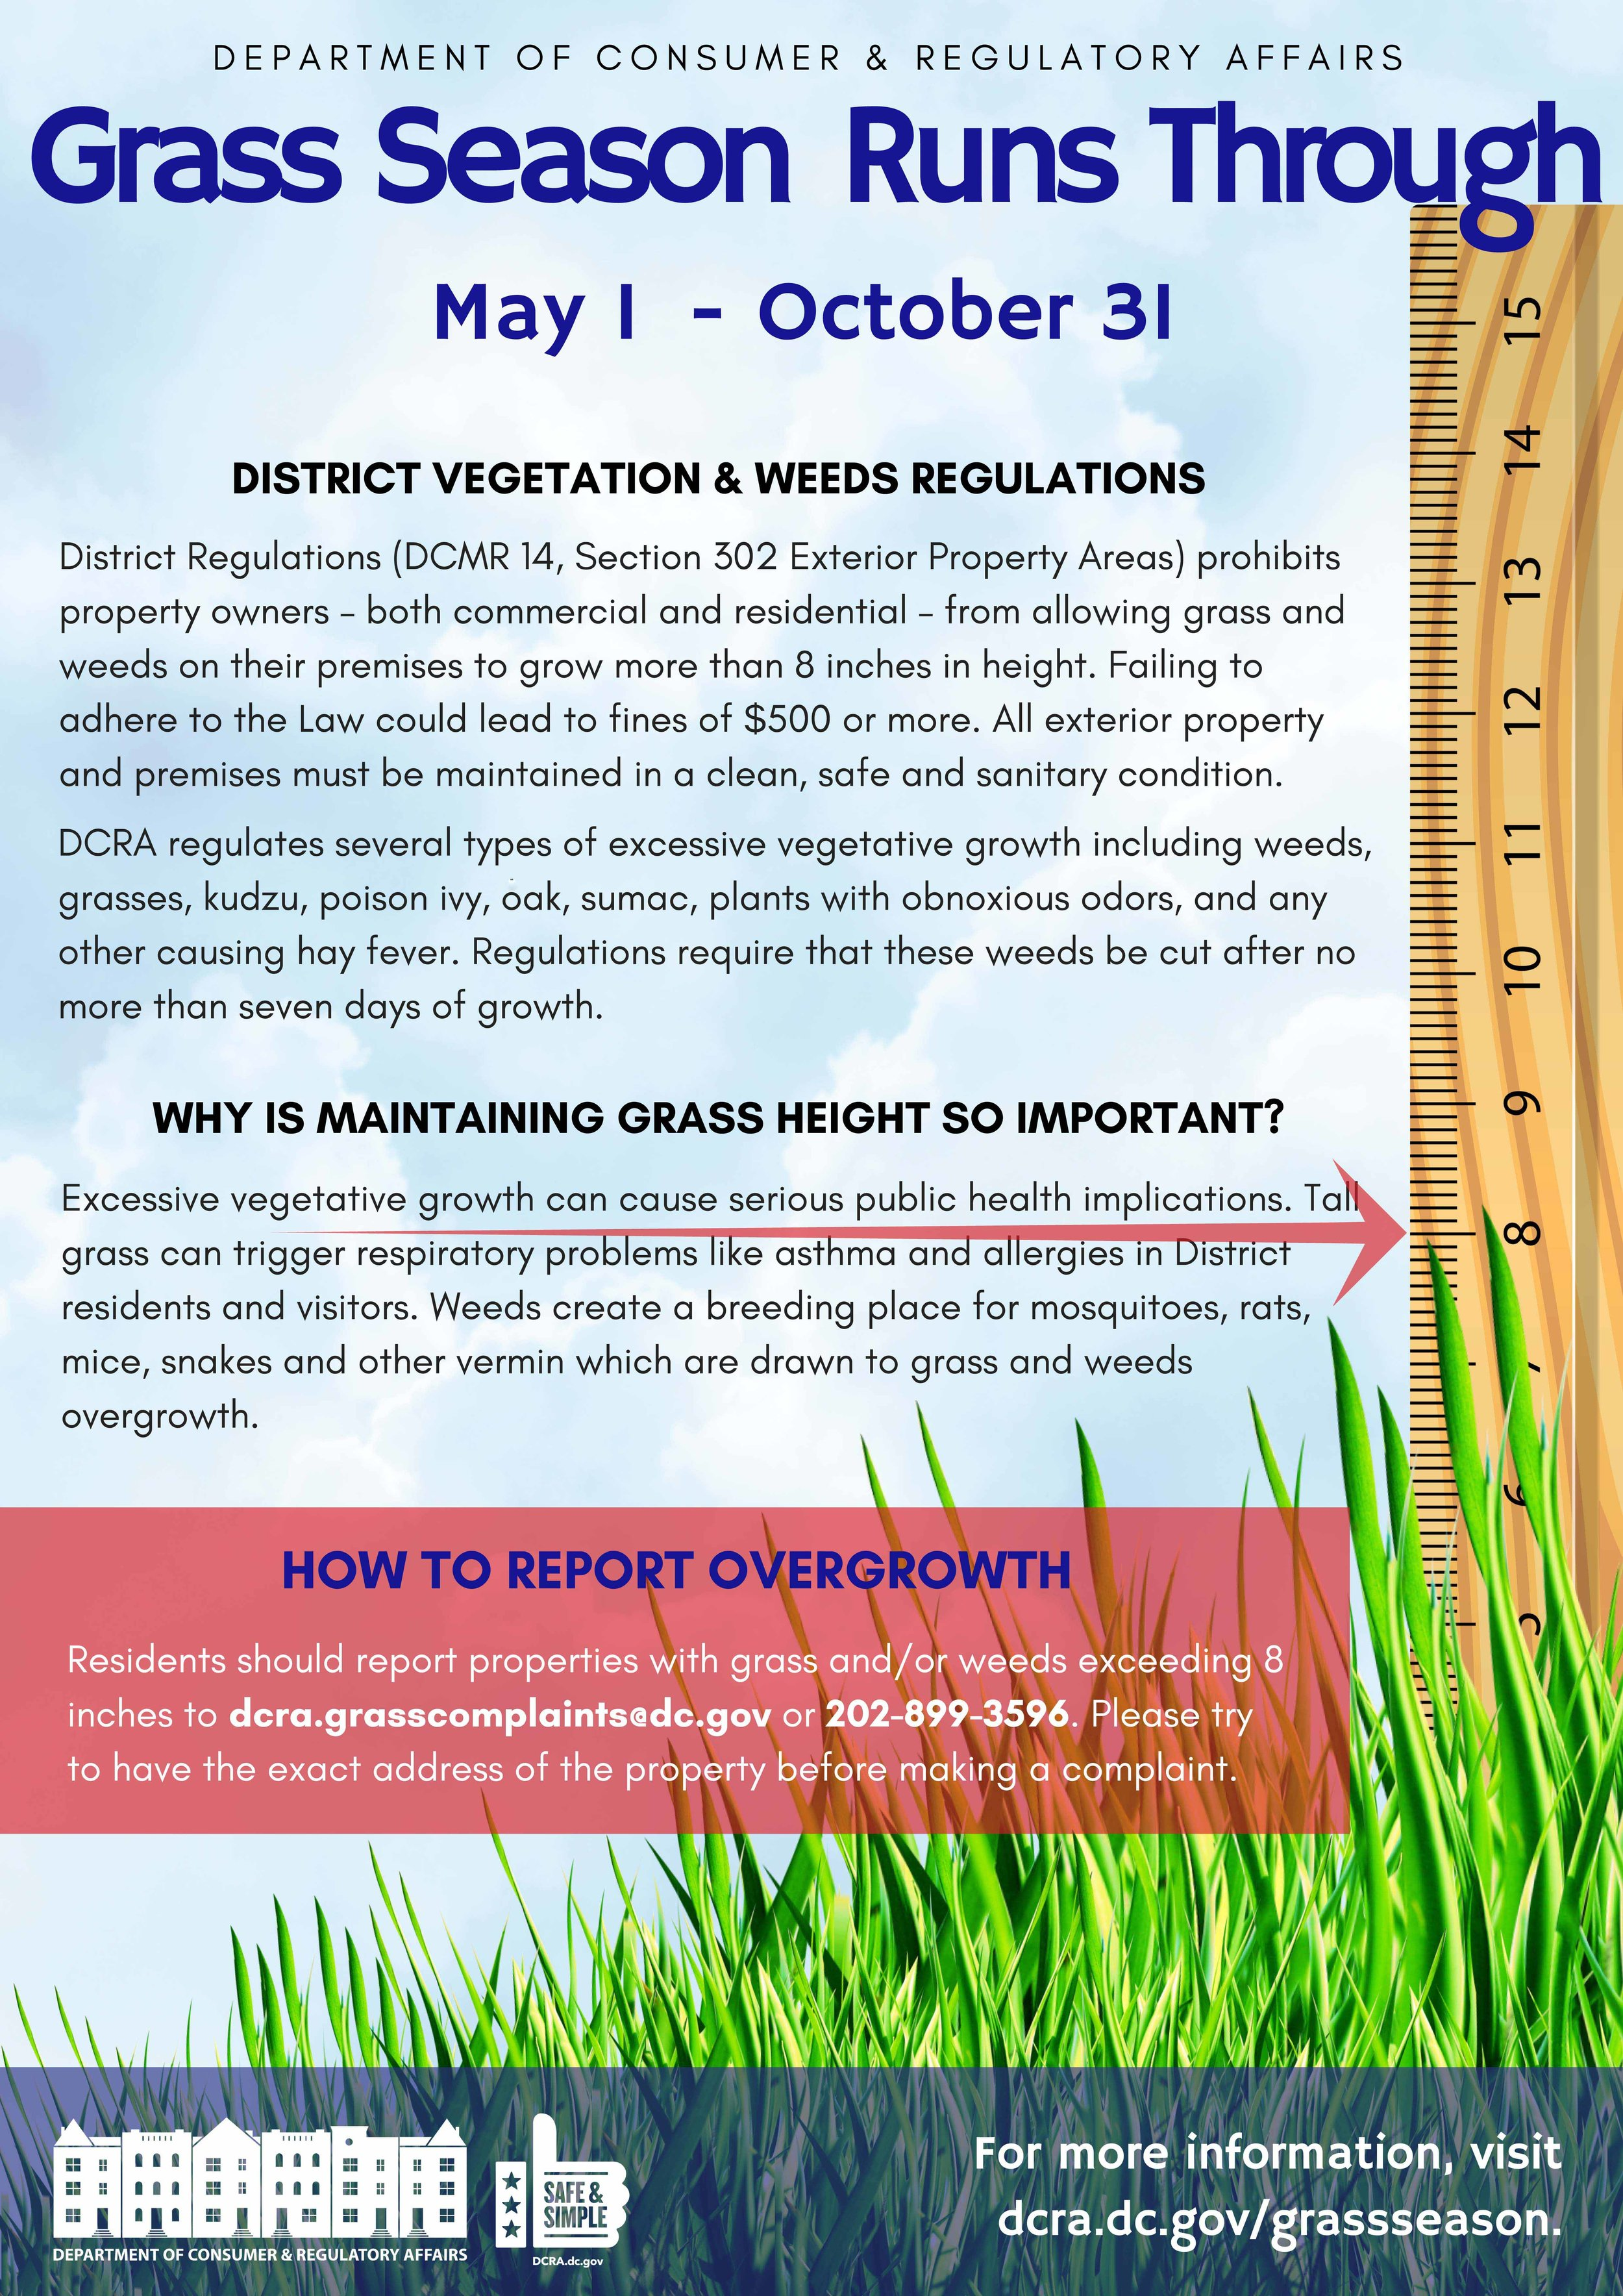 For more information on grass and weed regulations, which also apply to tree boxes, visit the  DCRA's webpage.